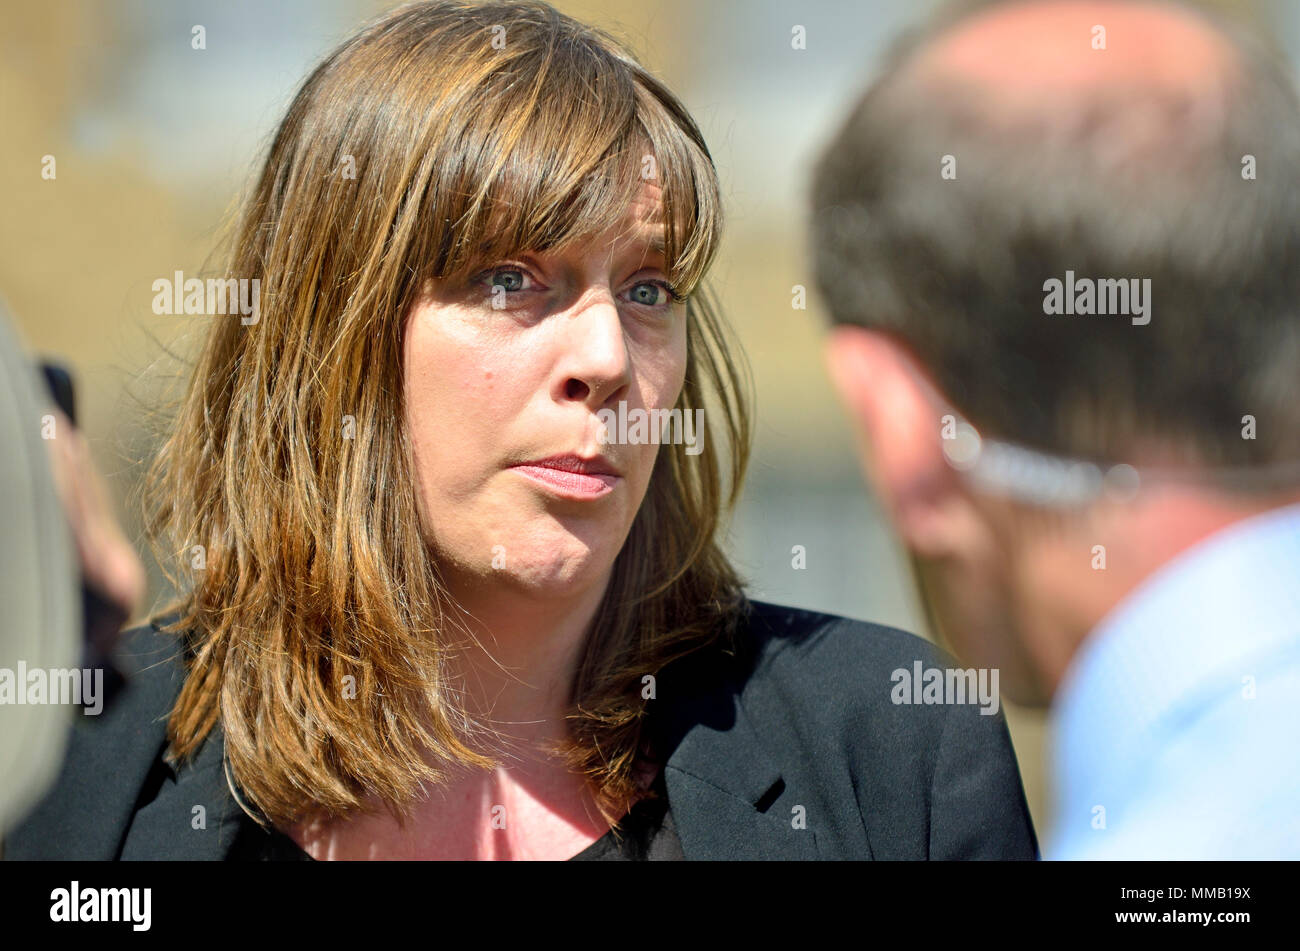 Jess Phillips MP (Labour: Birmingham Yardley) being interviewed on College Green, Westminster - Stock Image